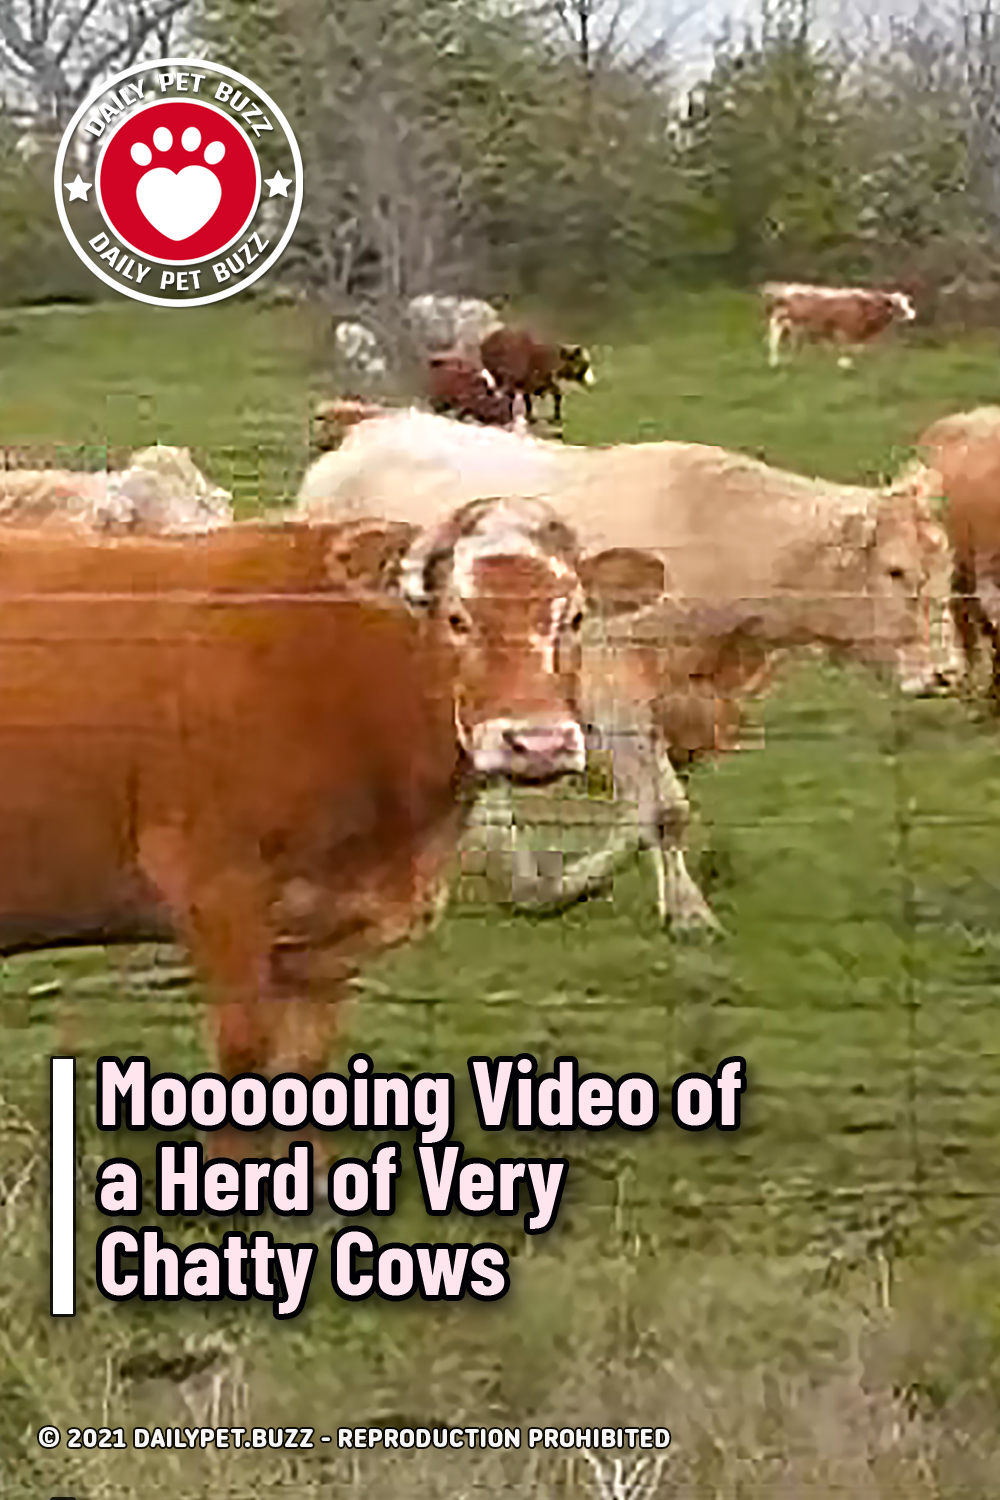 Moooooing Video of a Herd of Very Chatty Cows